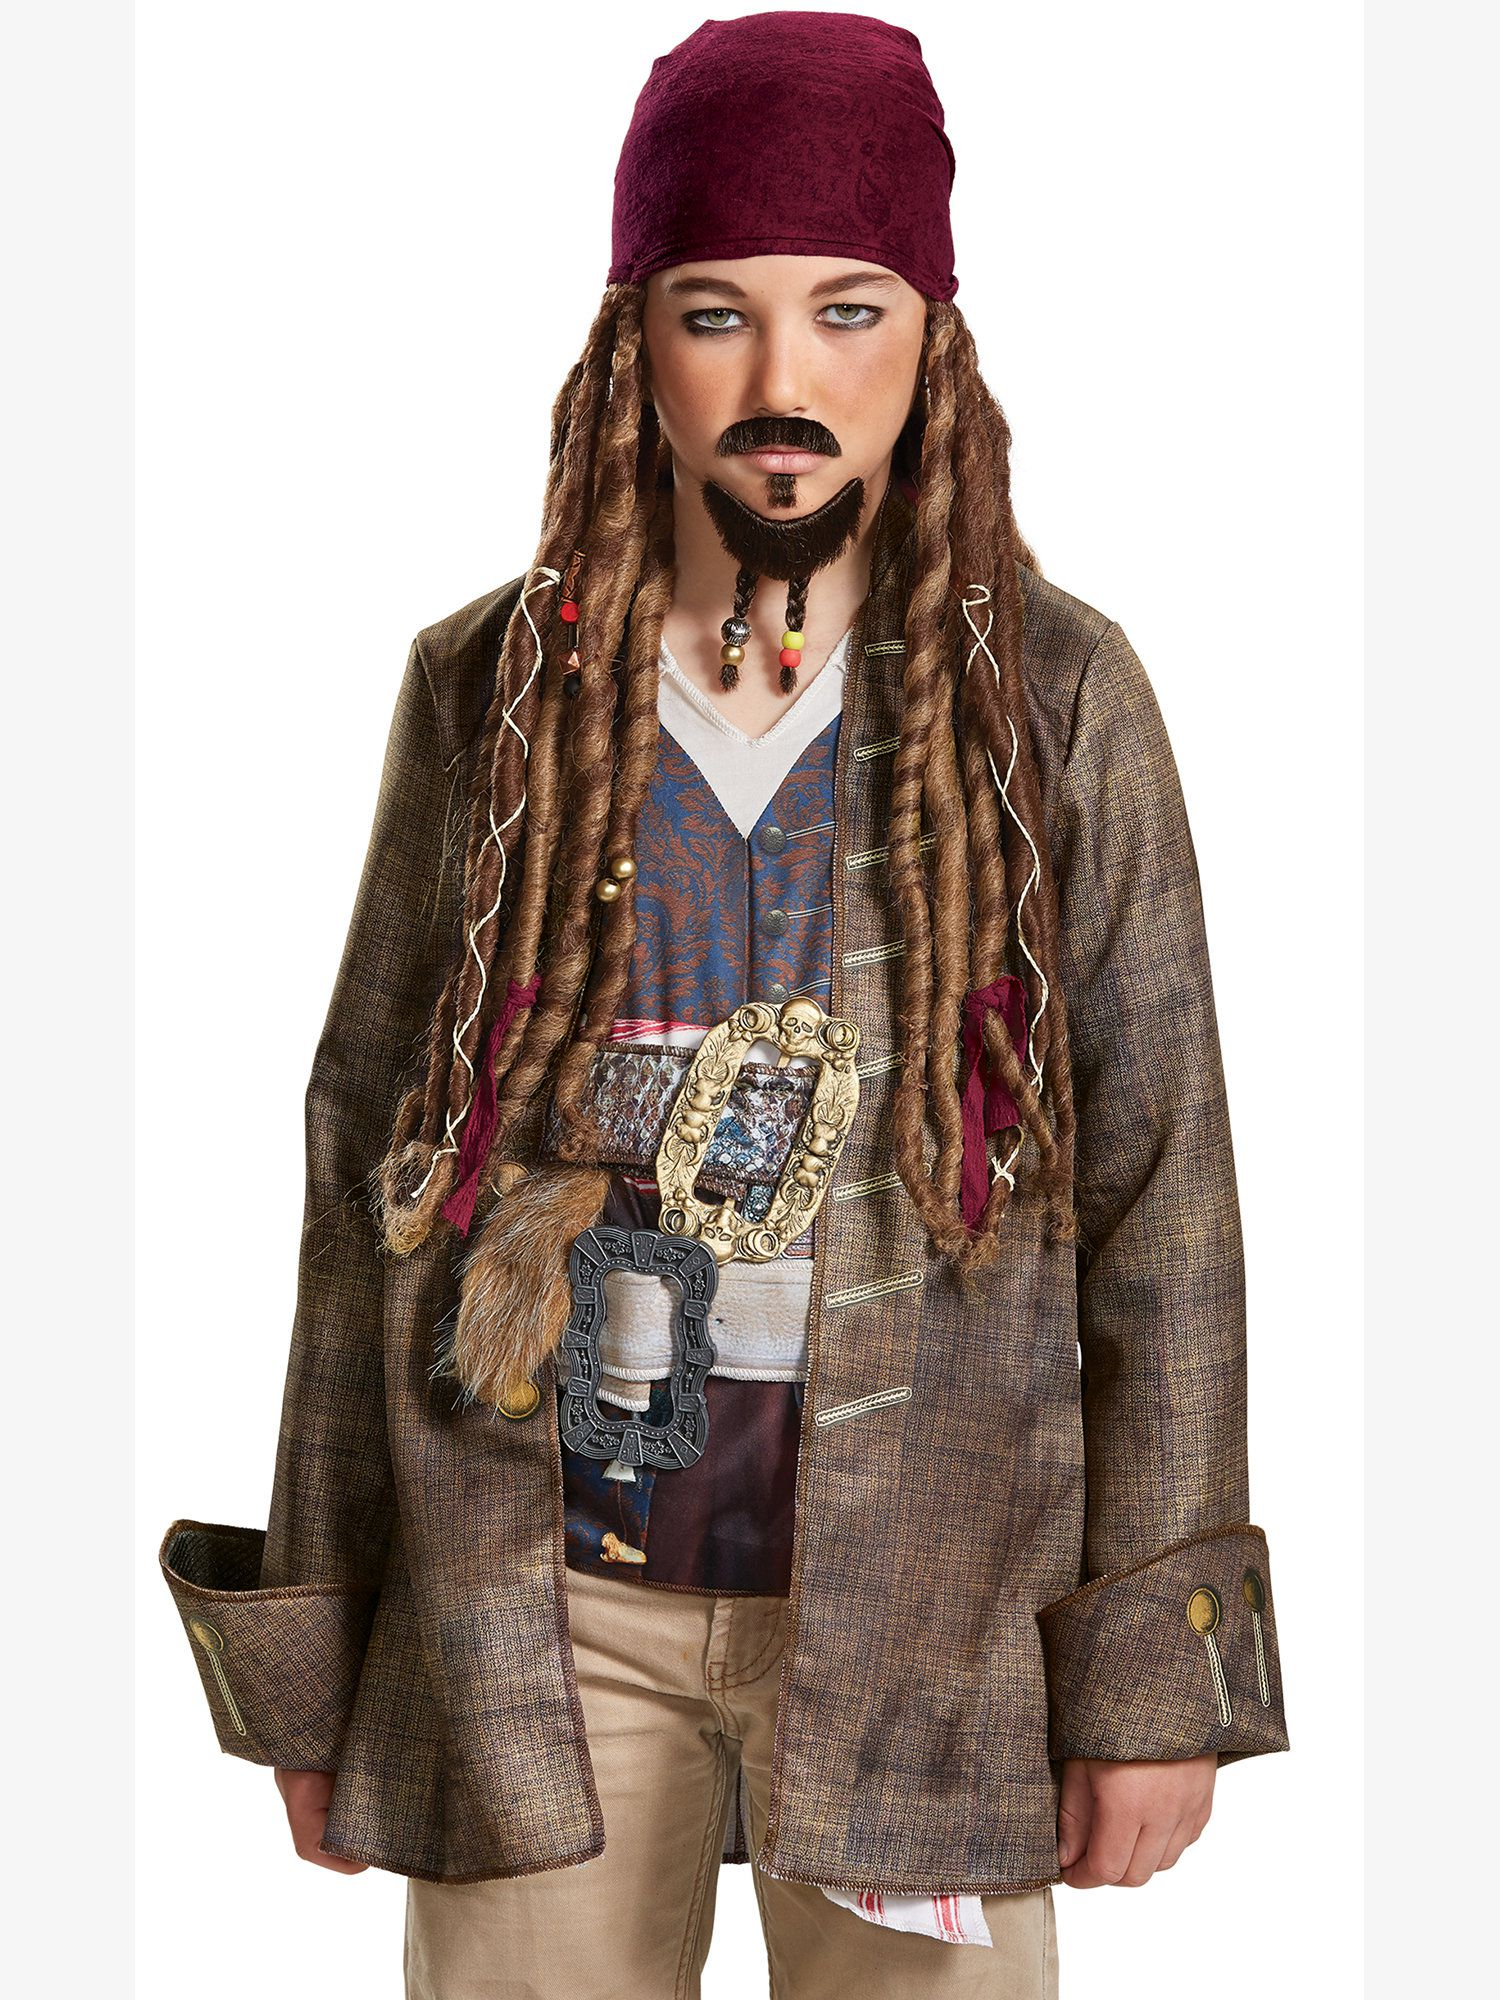 potc5 goatee & mustache - - costume accessories for 2018 | wholesale